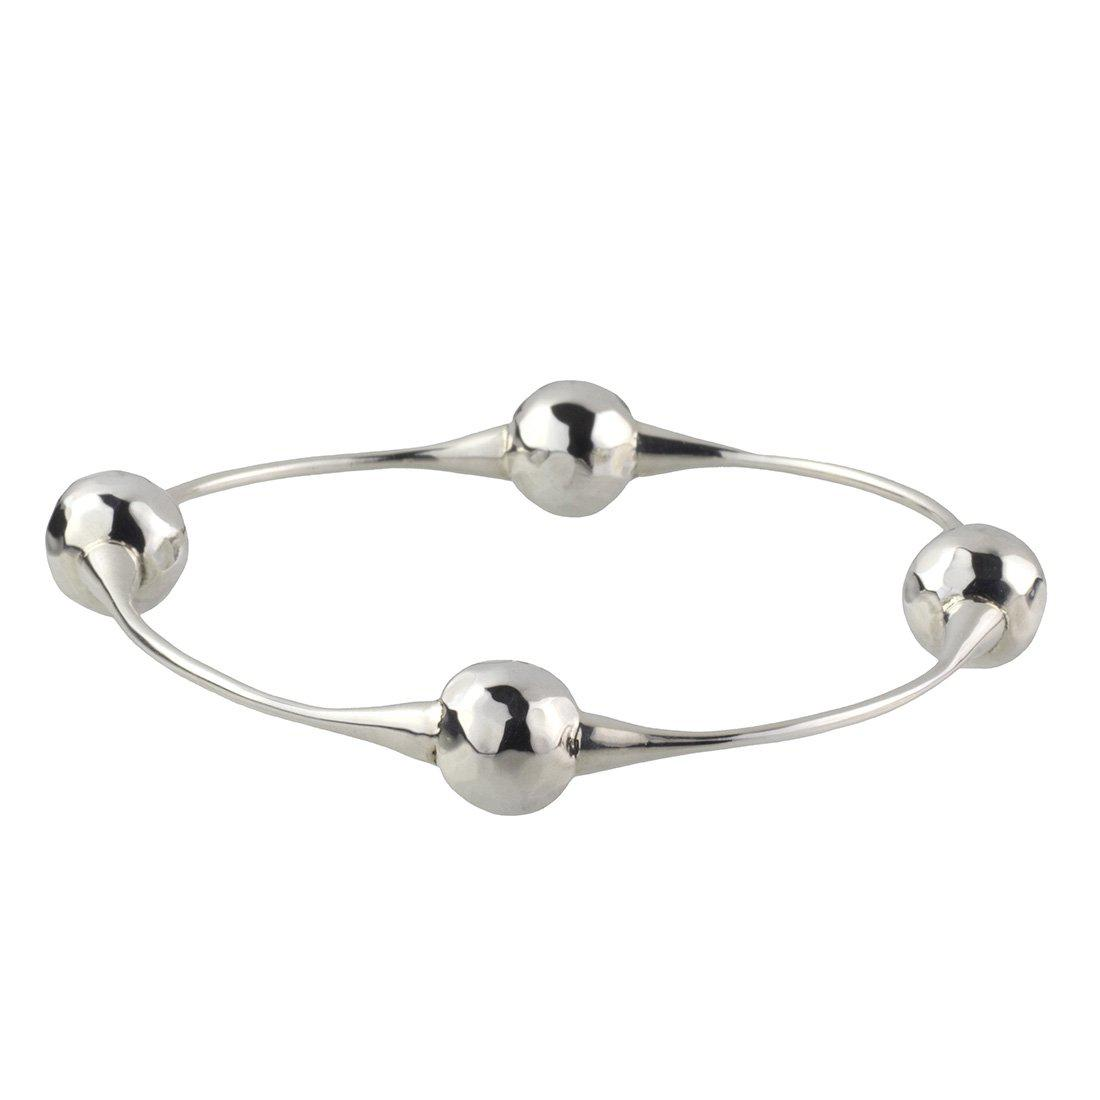 Mexican silver ball bangle bracelet